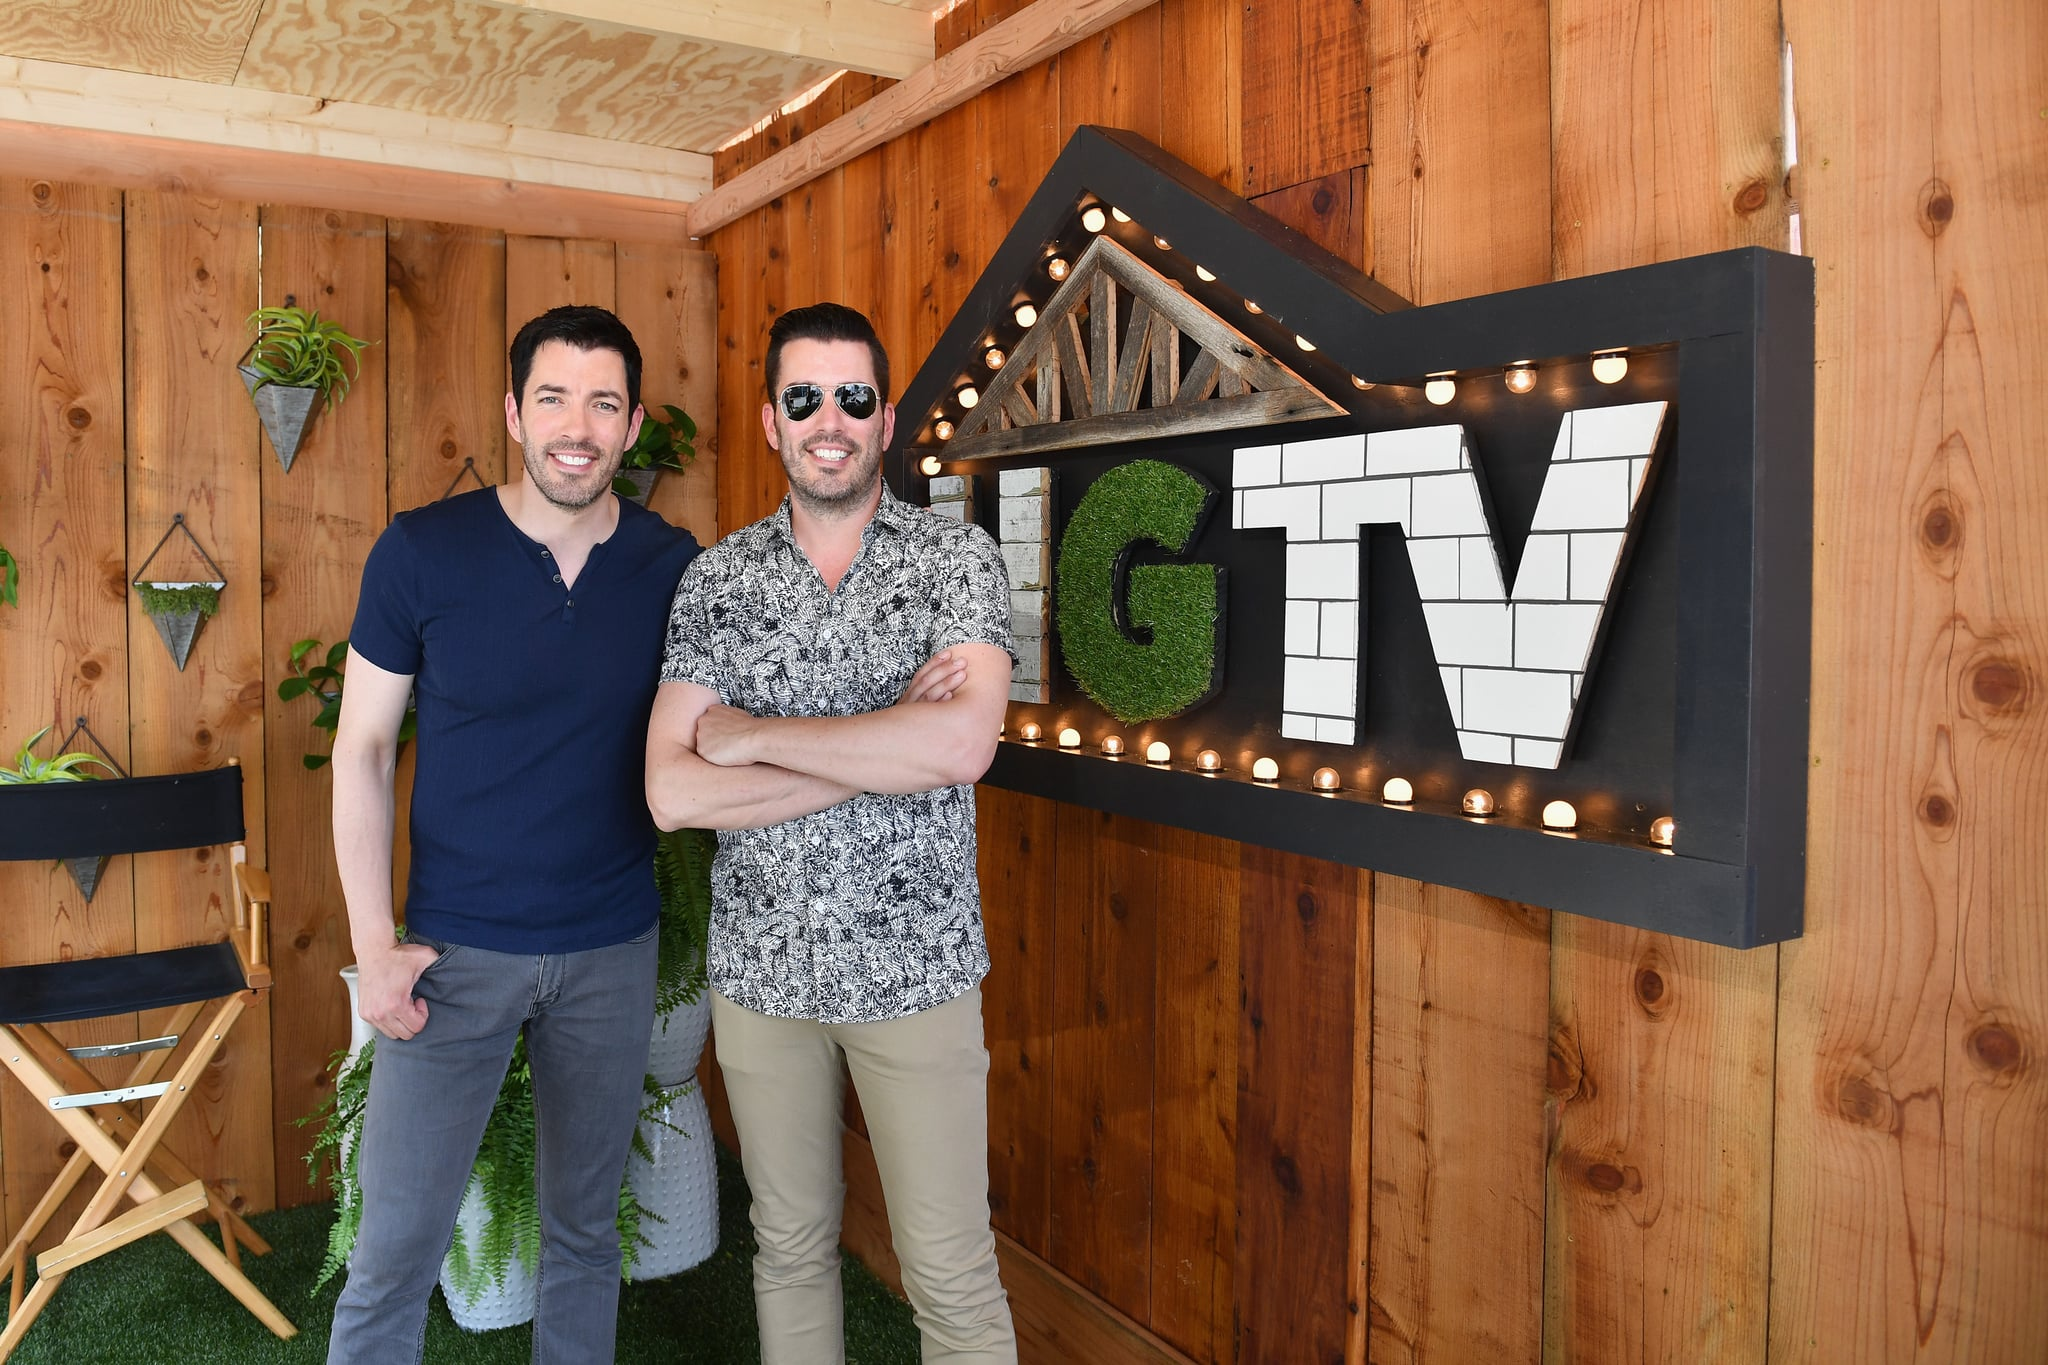 NASHVILLE, TN - JUNE 09:  The Property Brothers Drew Scott (L) and Jonathan Scott attend the HGTV Lodge at CMA Music Fest on June 9, 2018 in Nashville, Tennessee.  (Photo by Jason Davis/Getty Images for HGTV)